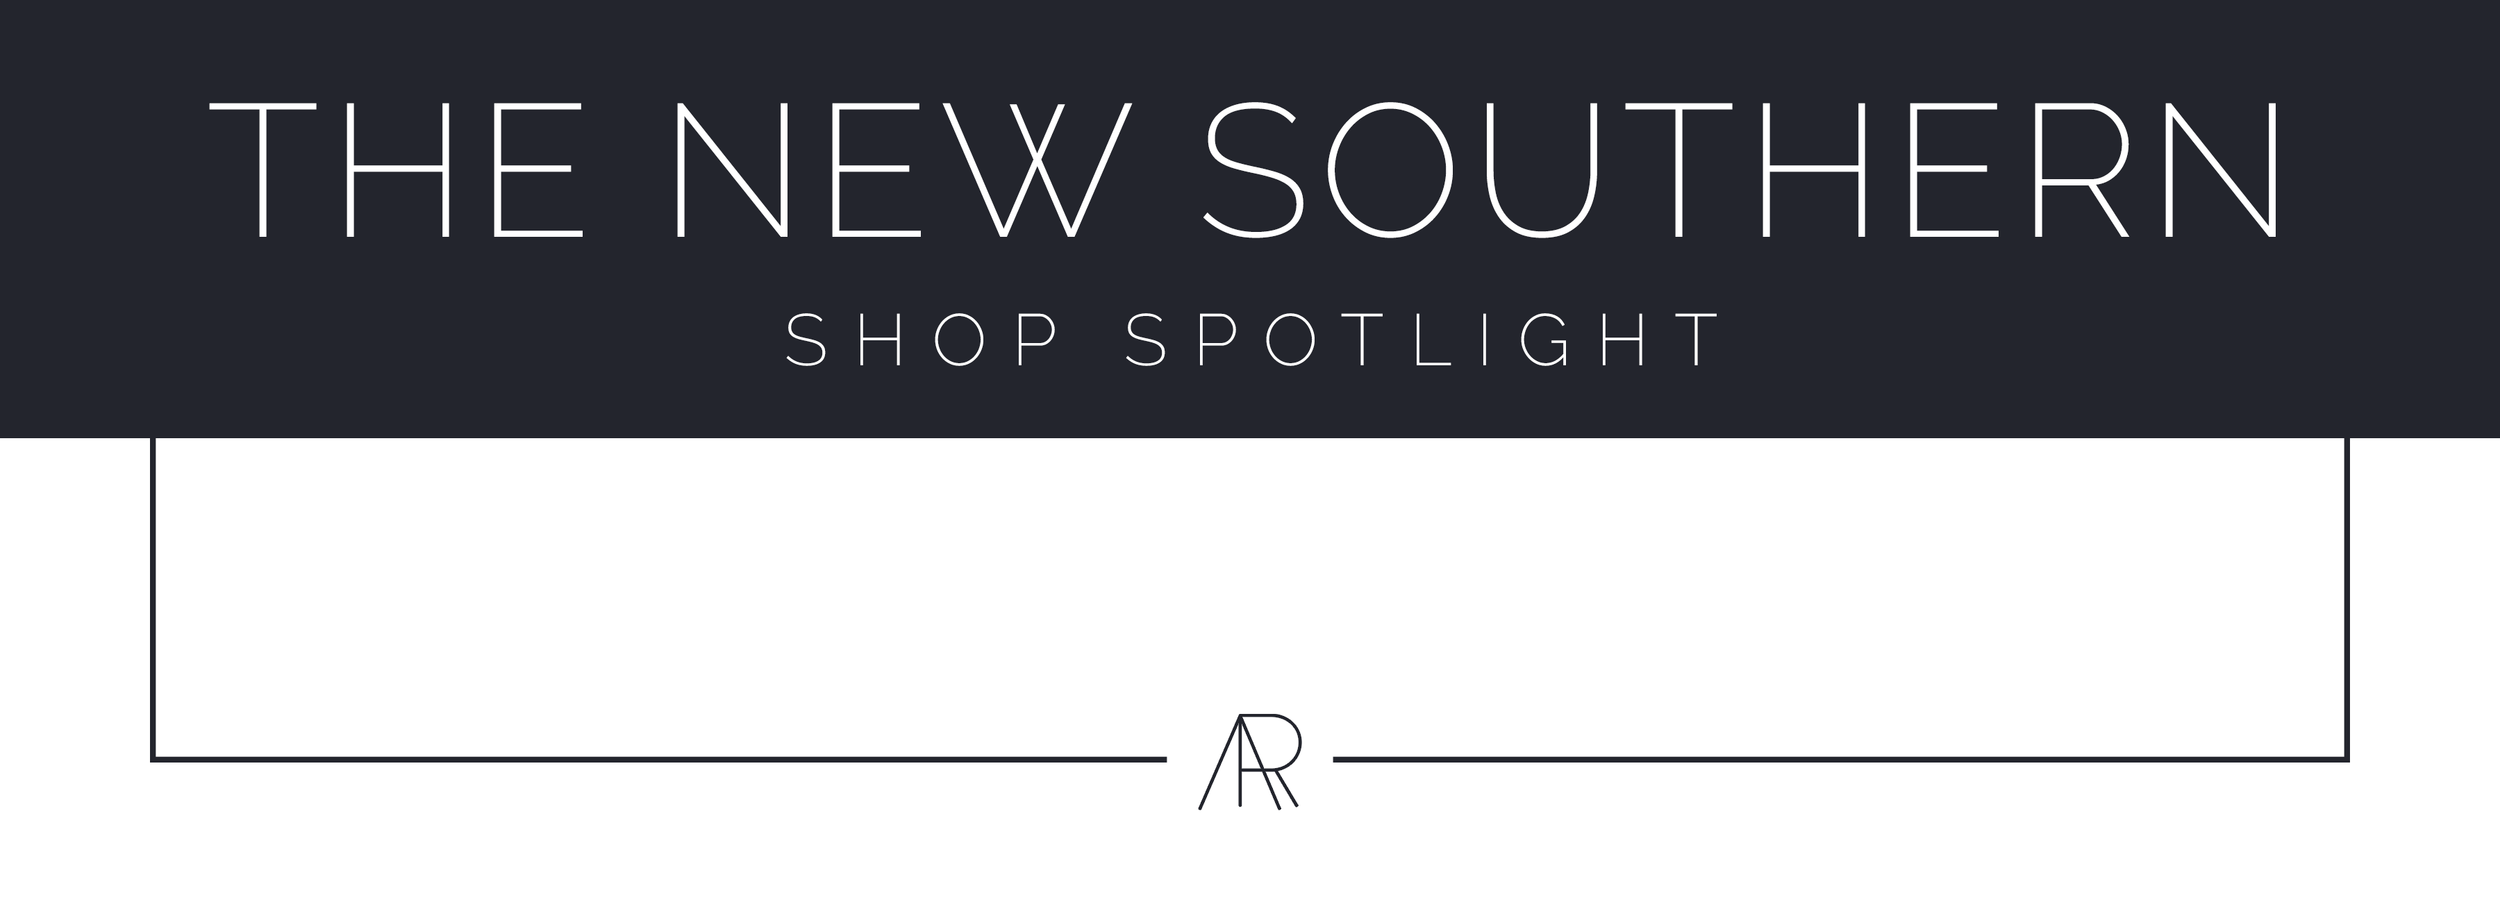 Alyssa Rosenheck's The New Southern Shop Spotlight with Rodney Simmons, Revival Home + Interiors of Chattanooga, TN